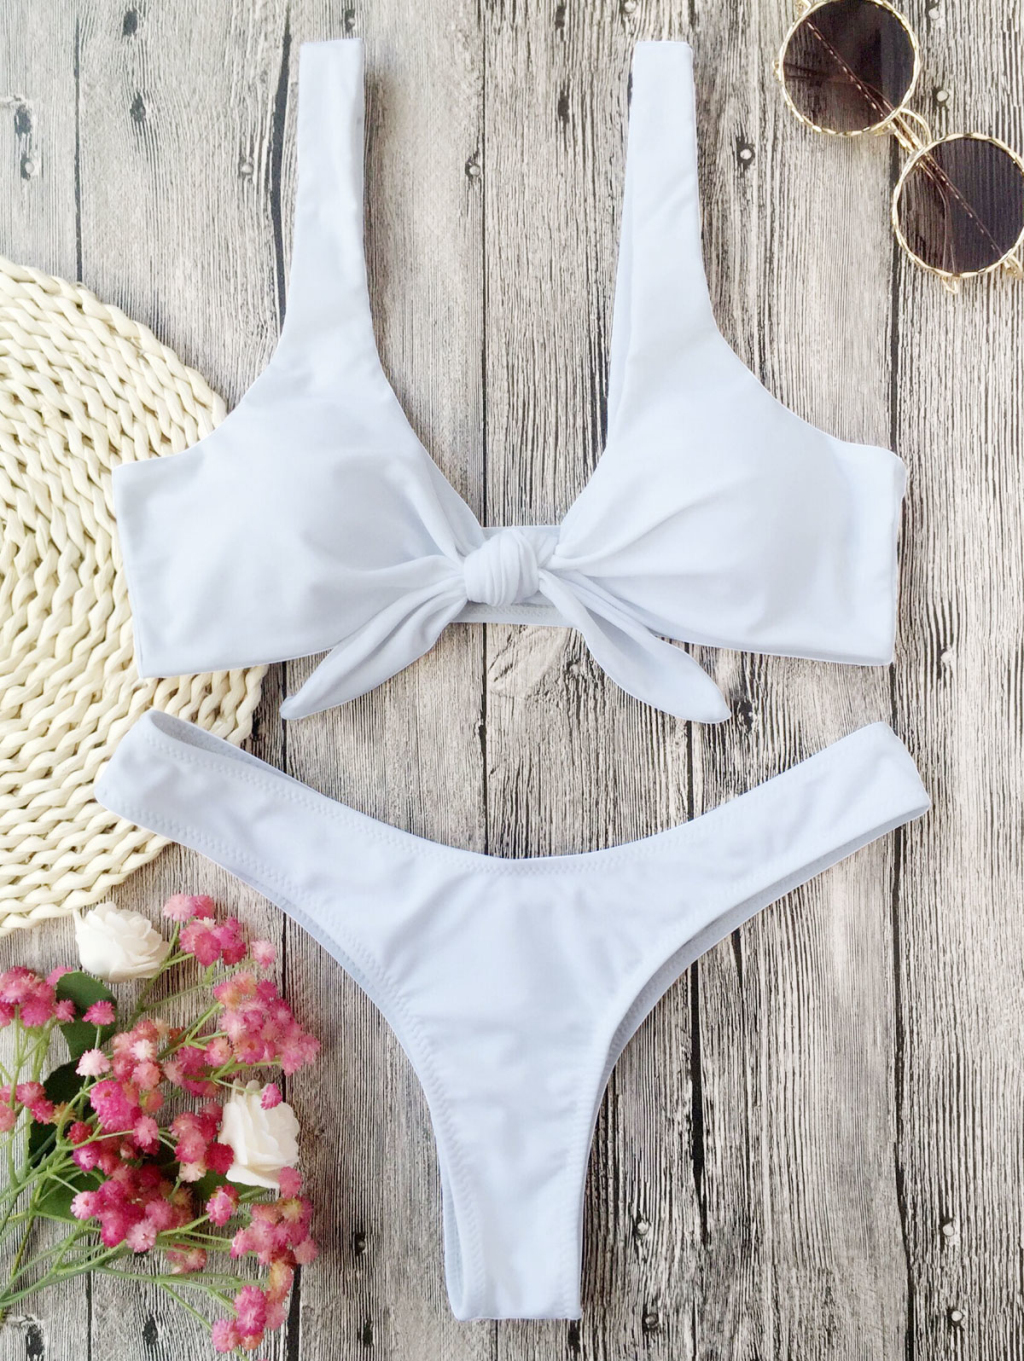 2018 New Sexy Women Swimsuits Brief Solid Pop Bow Push Up Bra Bandage Triangle Top Bikini Set Swimsuit Swimwear